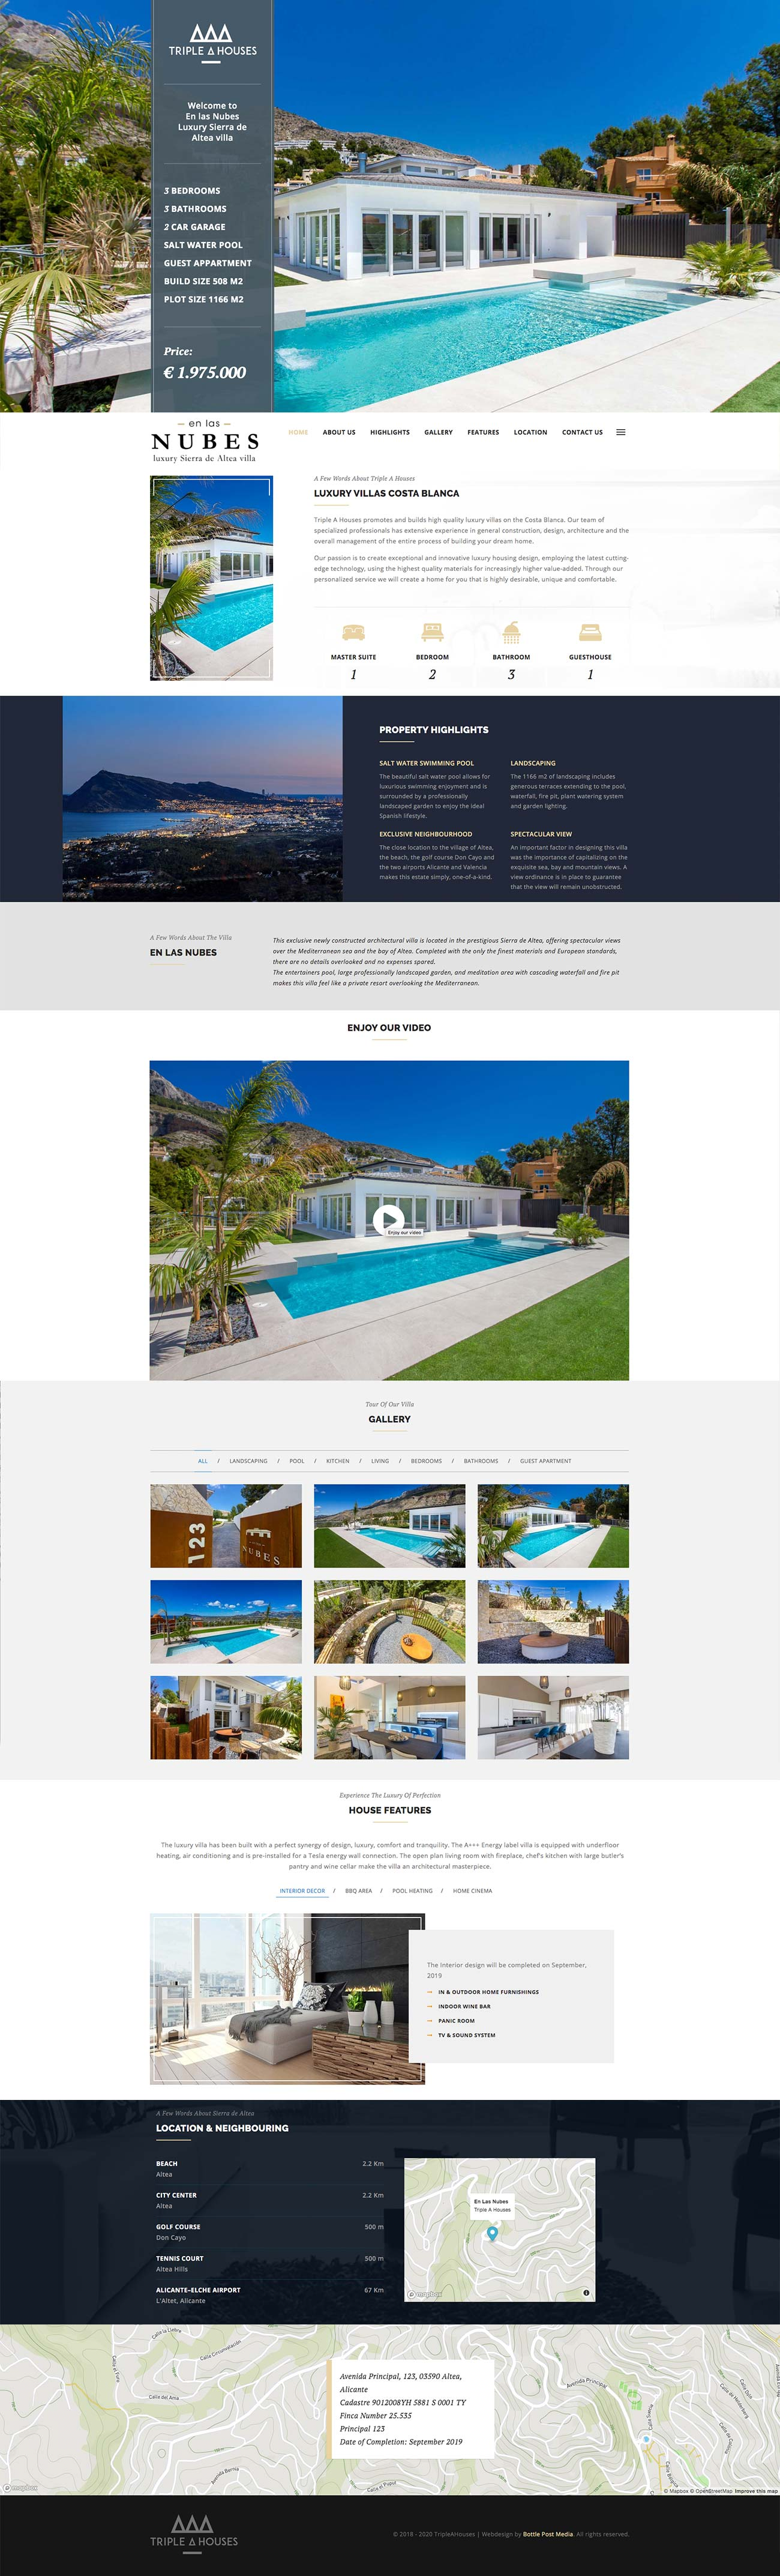 Website design Costa Blanca En las Nubes